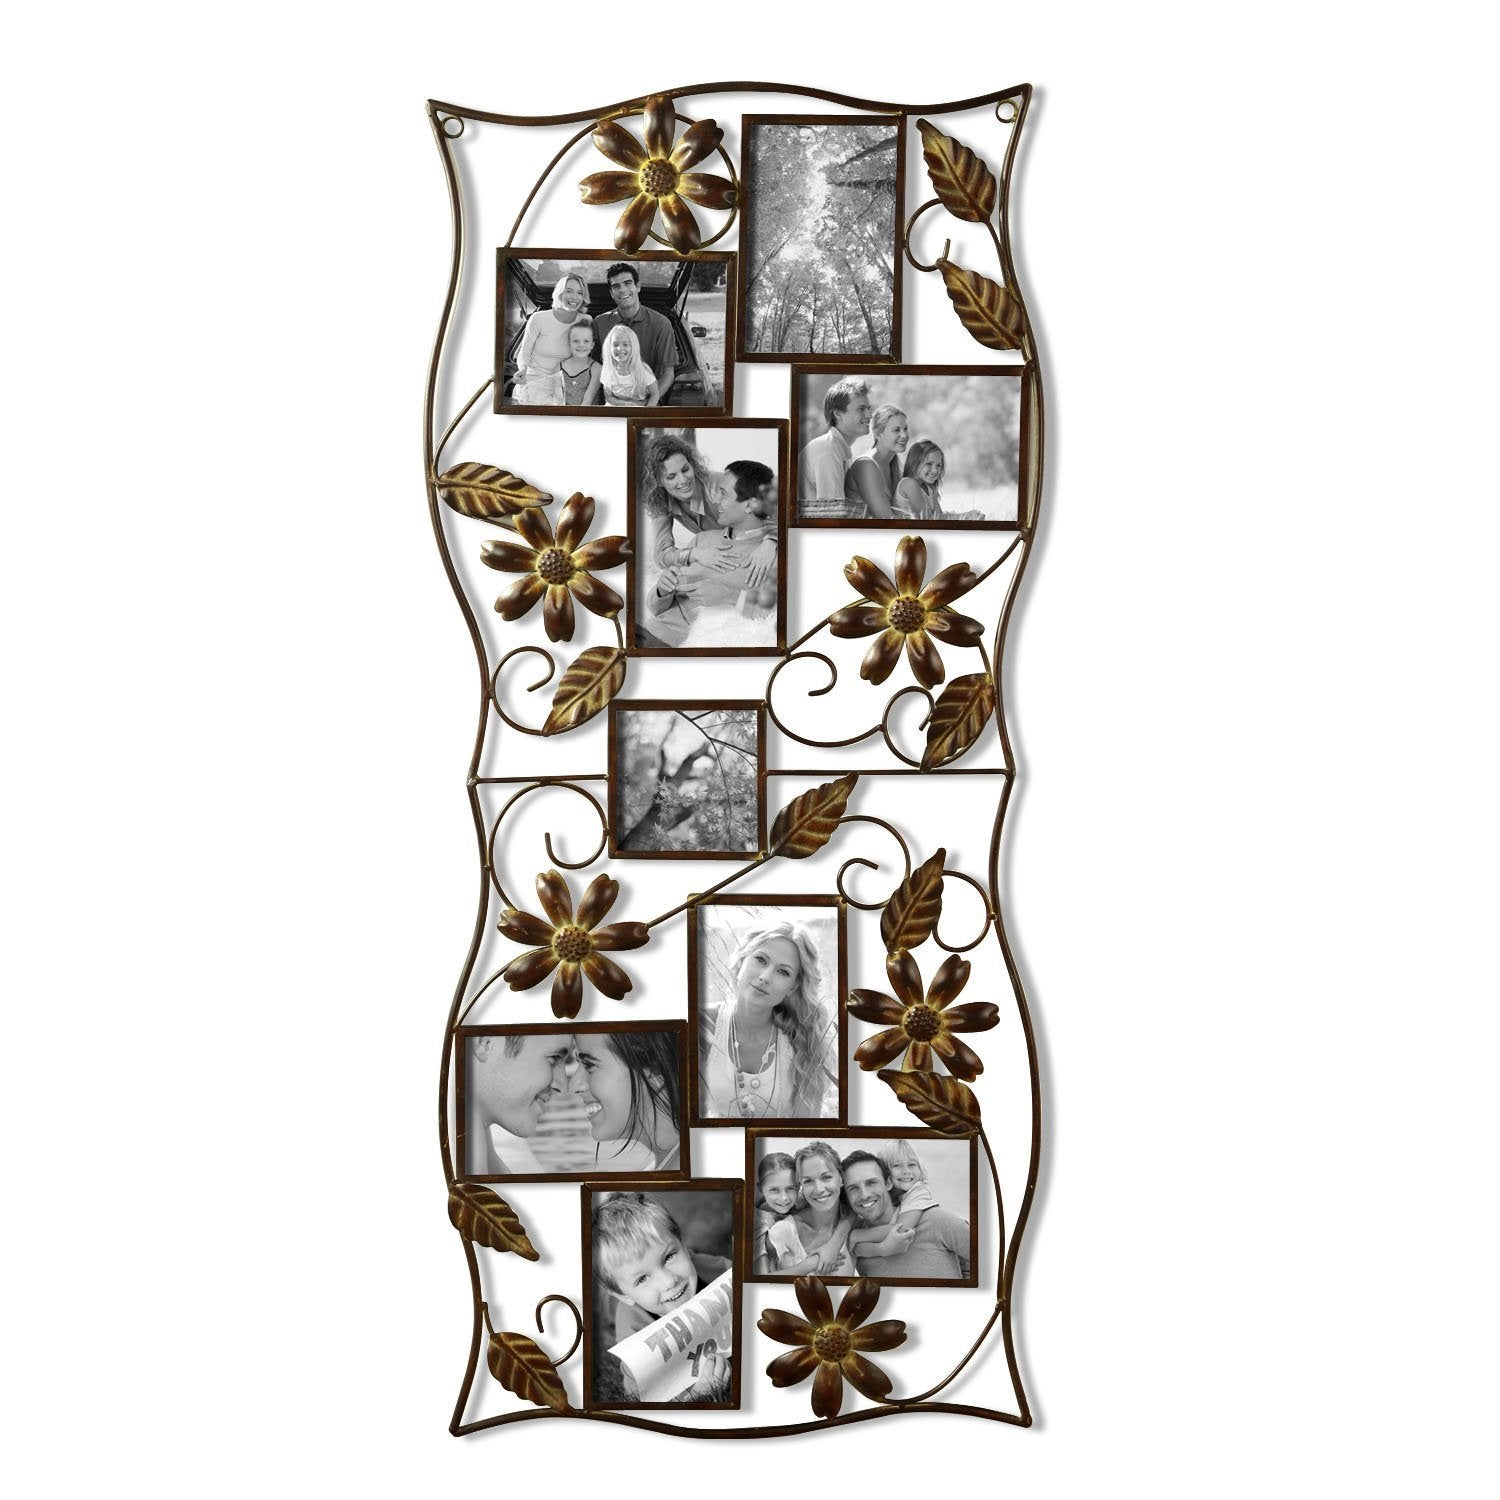 Adeco 9 Opening Iron Collage Wall Hanging Photo Frame Overstock 9401259